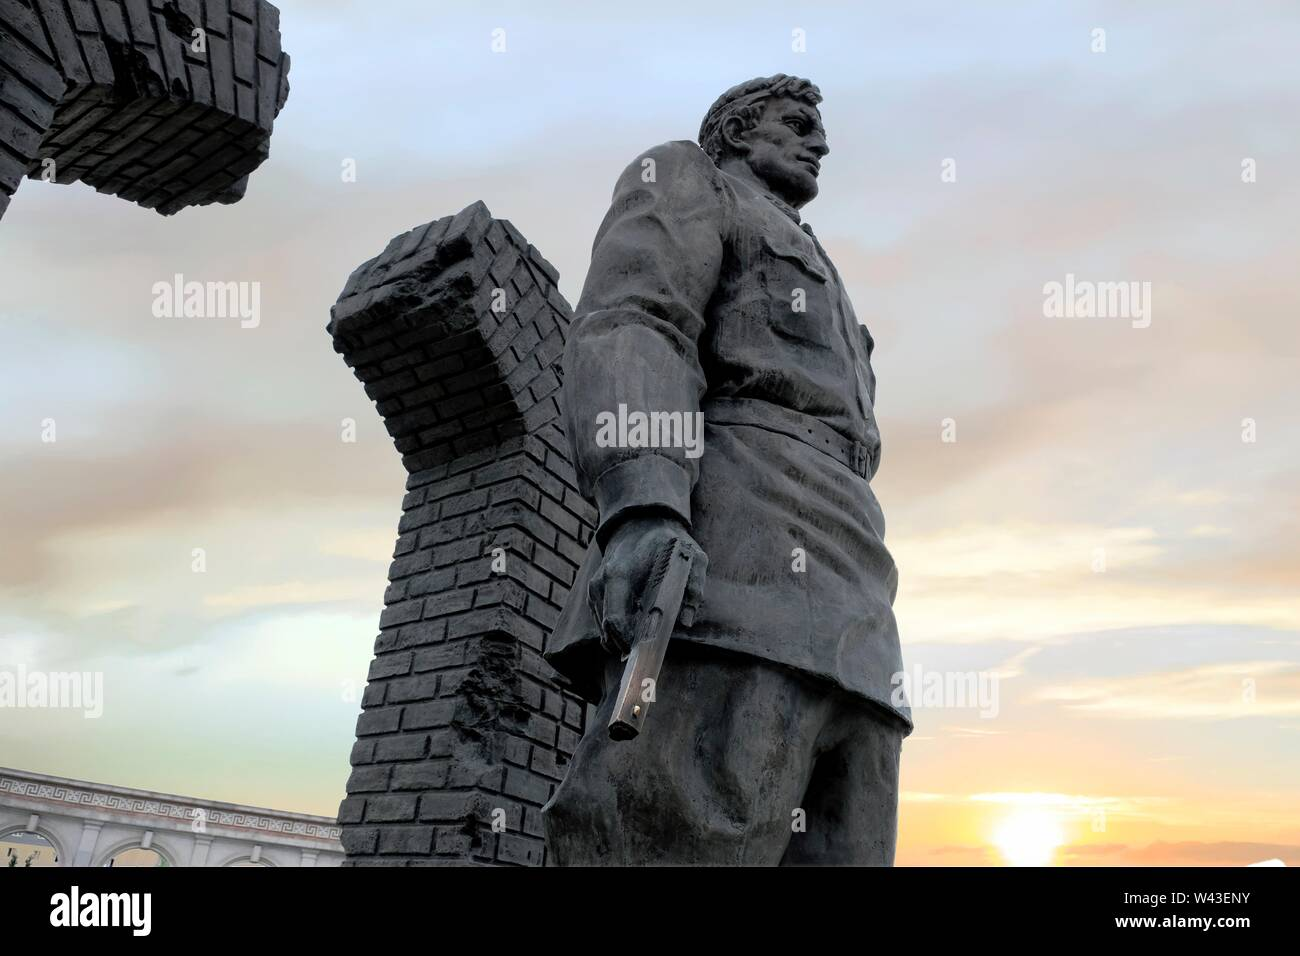 Monument to Umatgirei Barkhanoyev a Soviet Ingush soldier who was the last survivor and defender of Brest Fortress in Belarus during the Second World War placed at the Nazran Memorial For The Ingush And Chechen Deportation located in the Republic of Ingushetia in the North Caucasian Federal District of Russia. - Stock Image